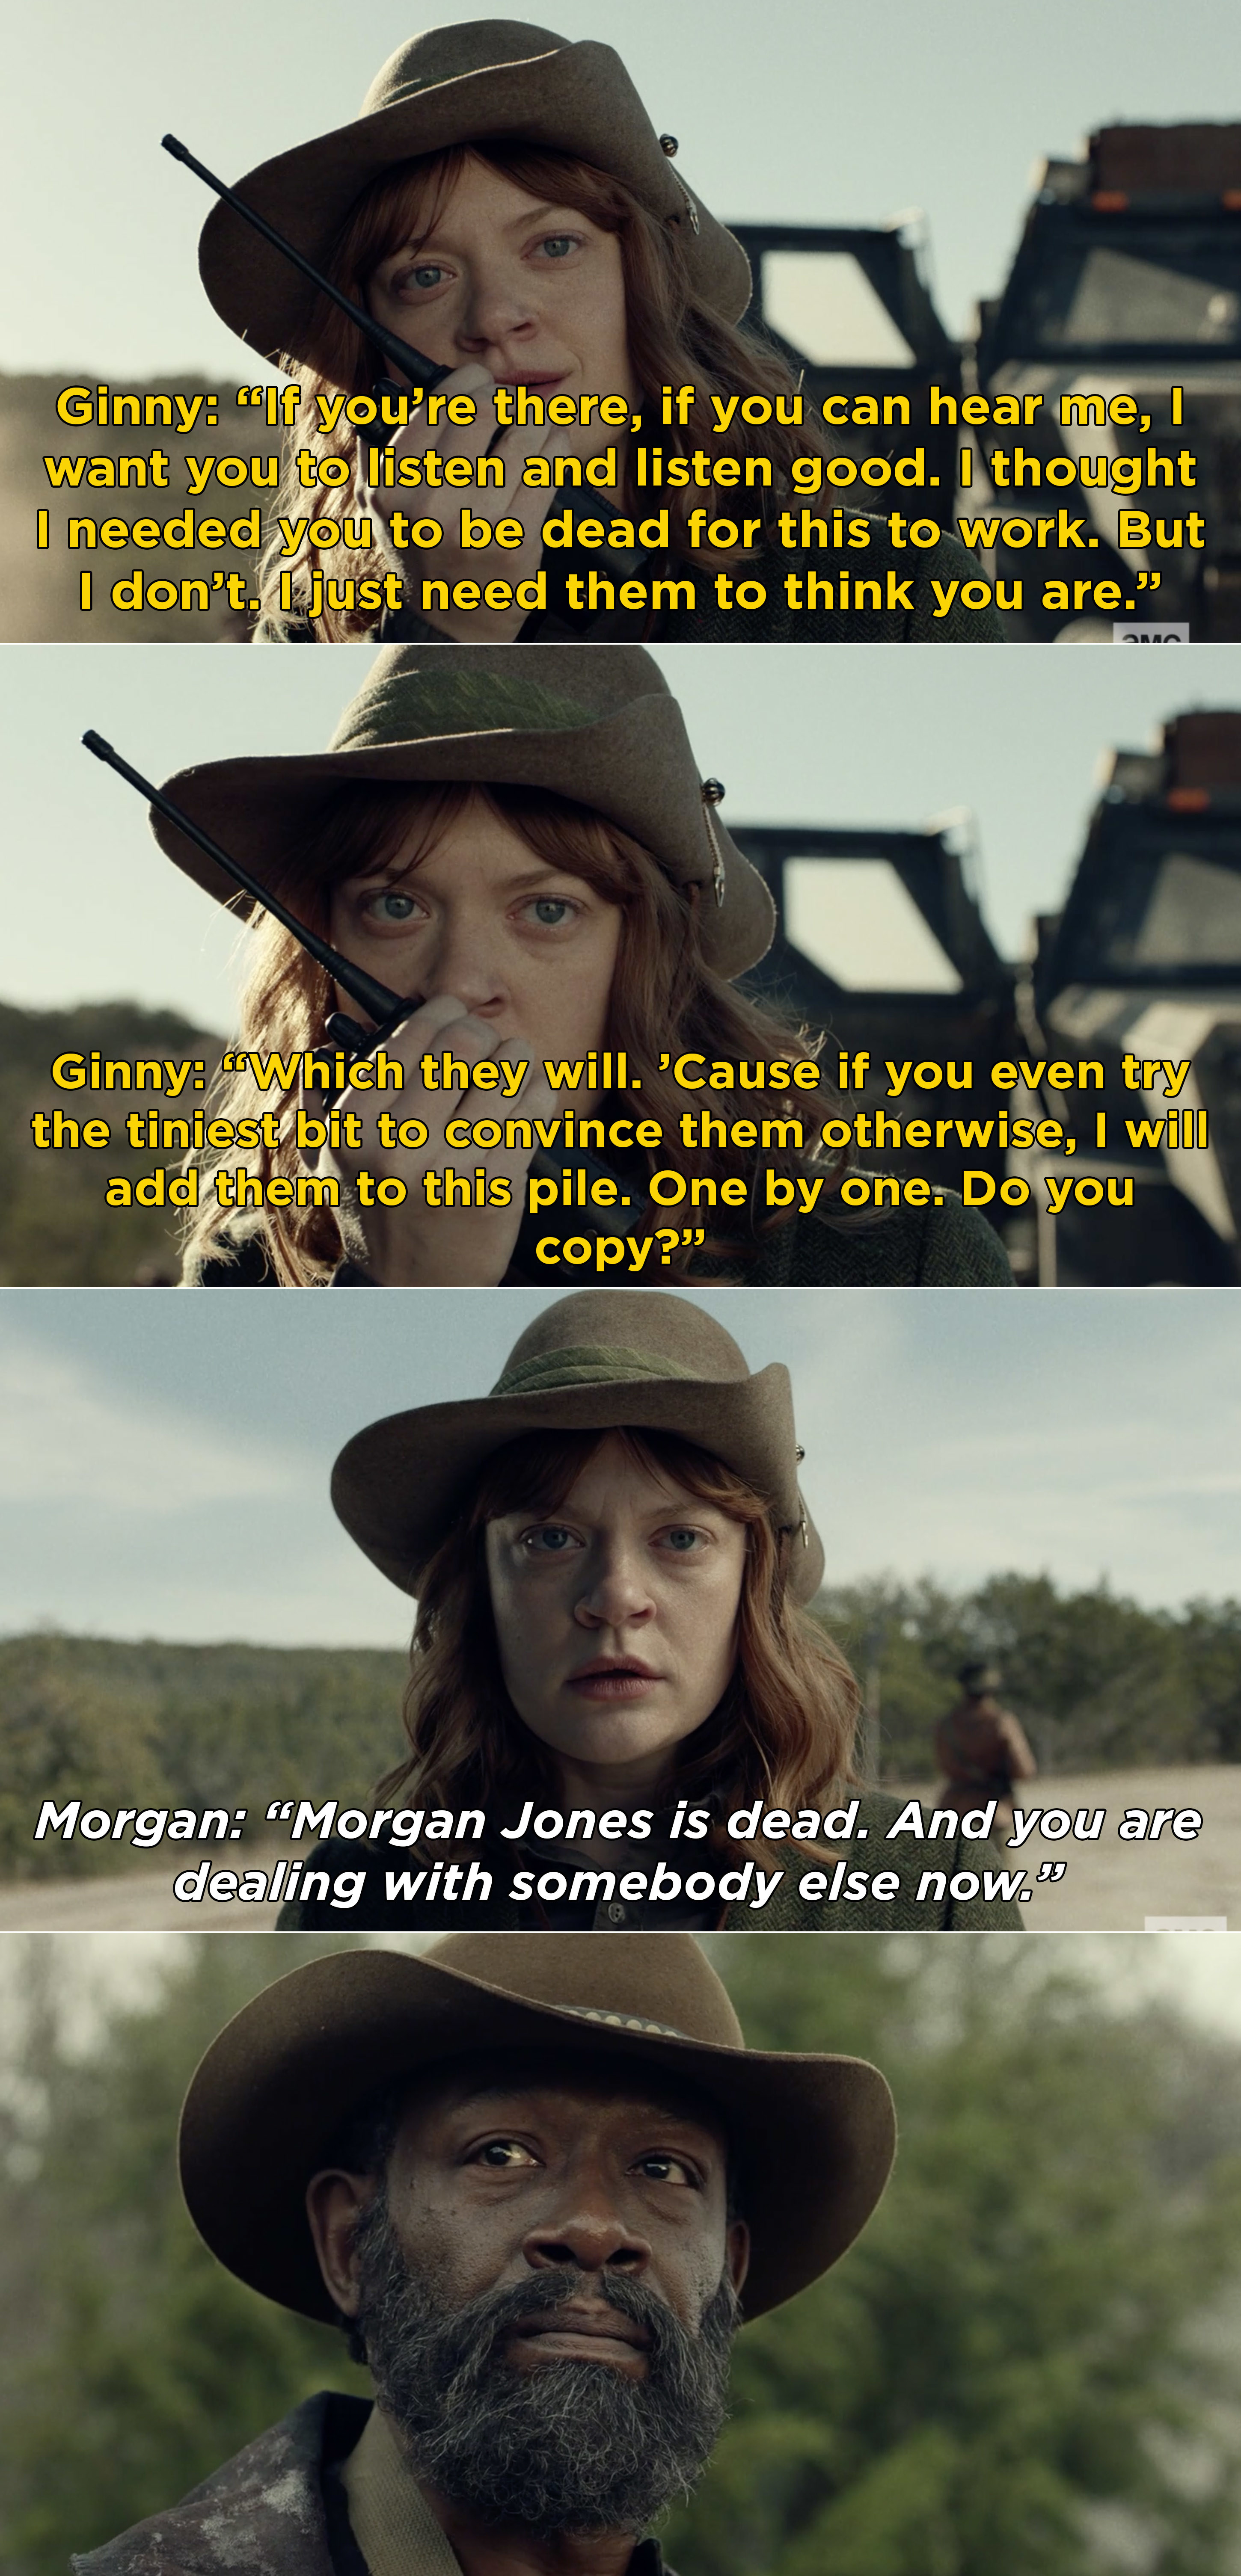 """Ginny telling Morgan over the radio that he needs to keep pretending that he's dead and Morgan saying, """"You are dealing with somebody else now"""""""